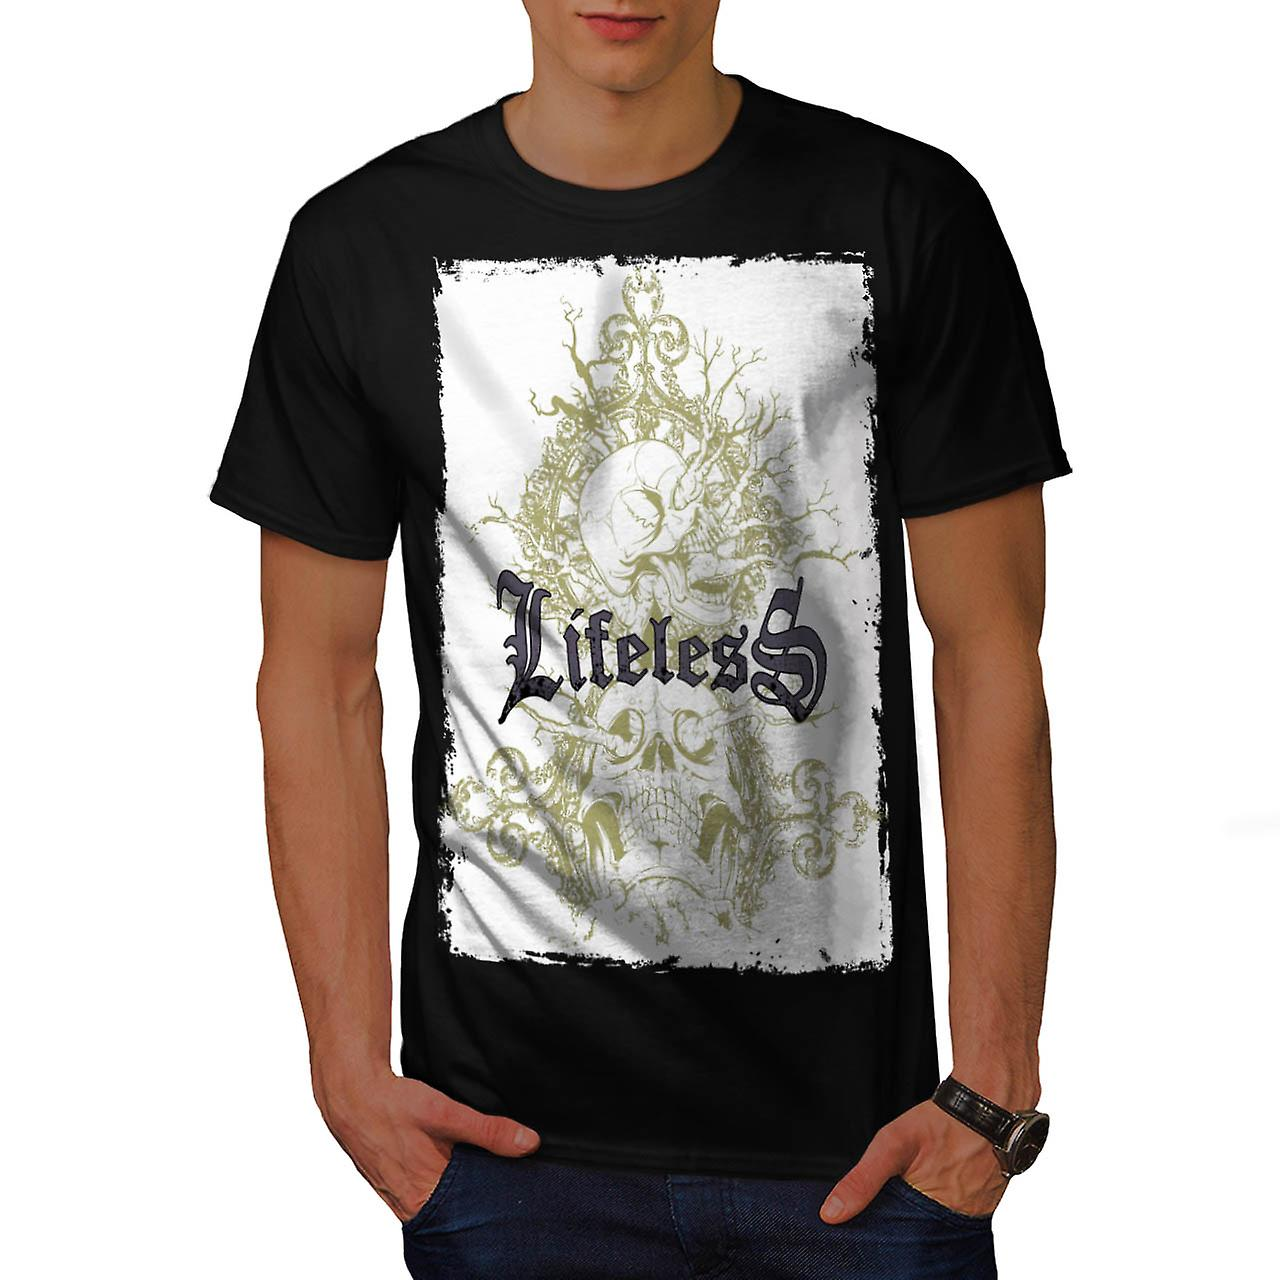 Lifeless Soul Skull Grave Yard Men Black T-shirt | Wellcoda